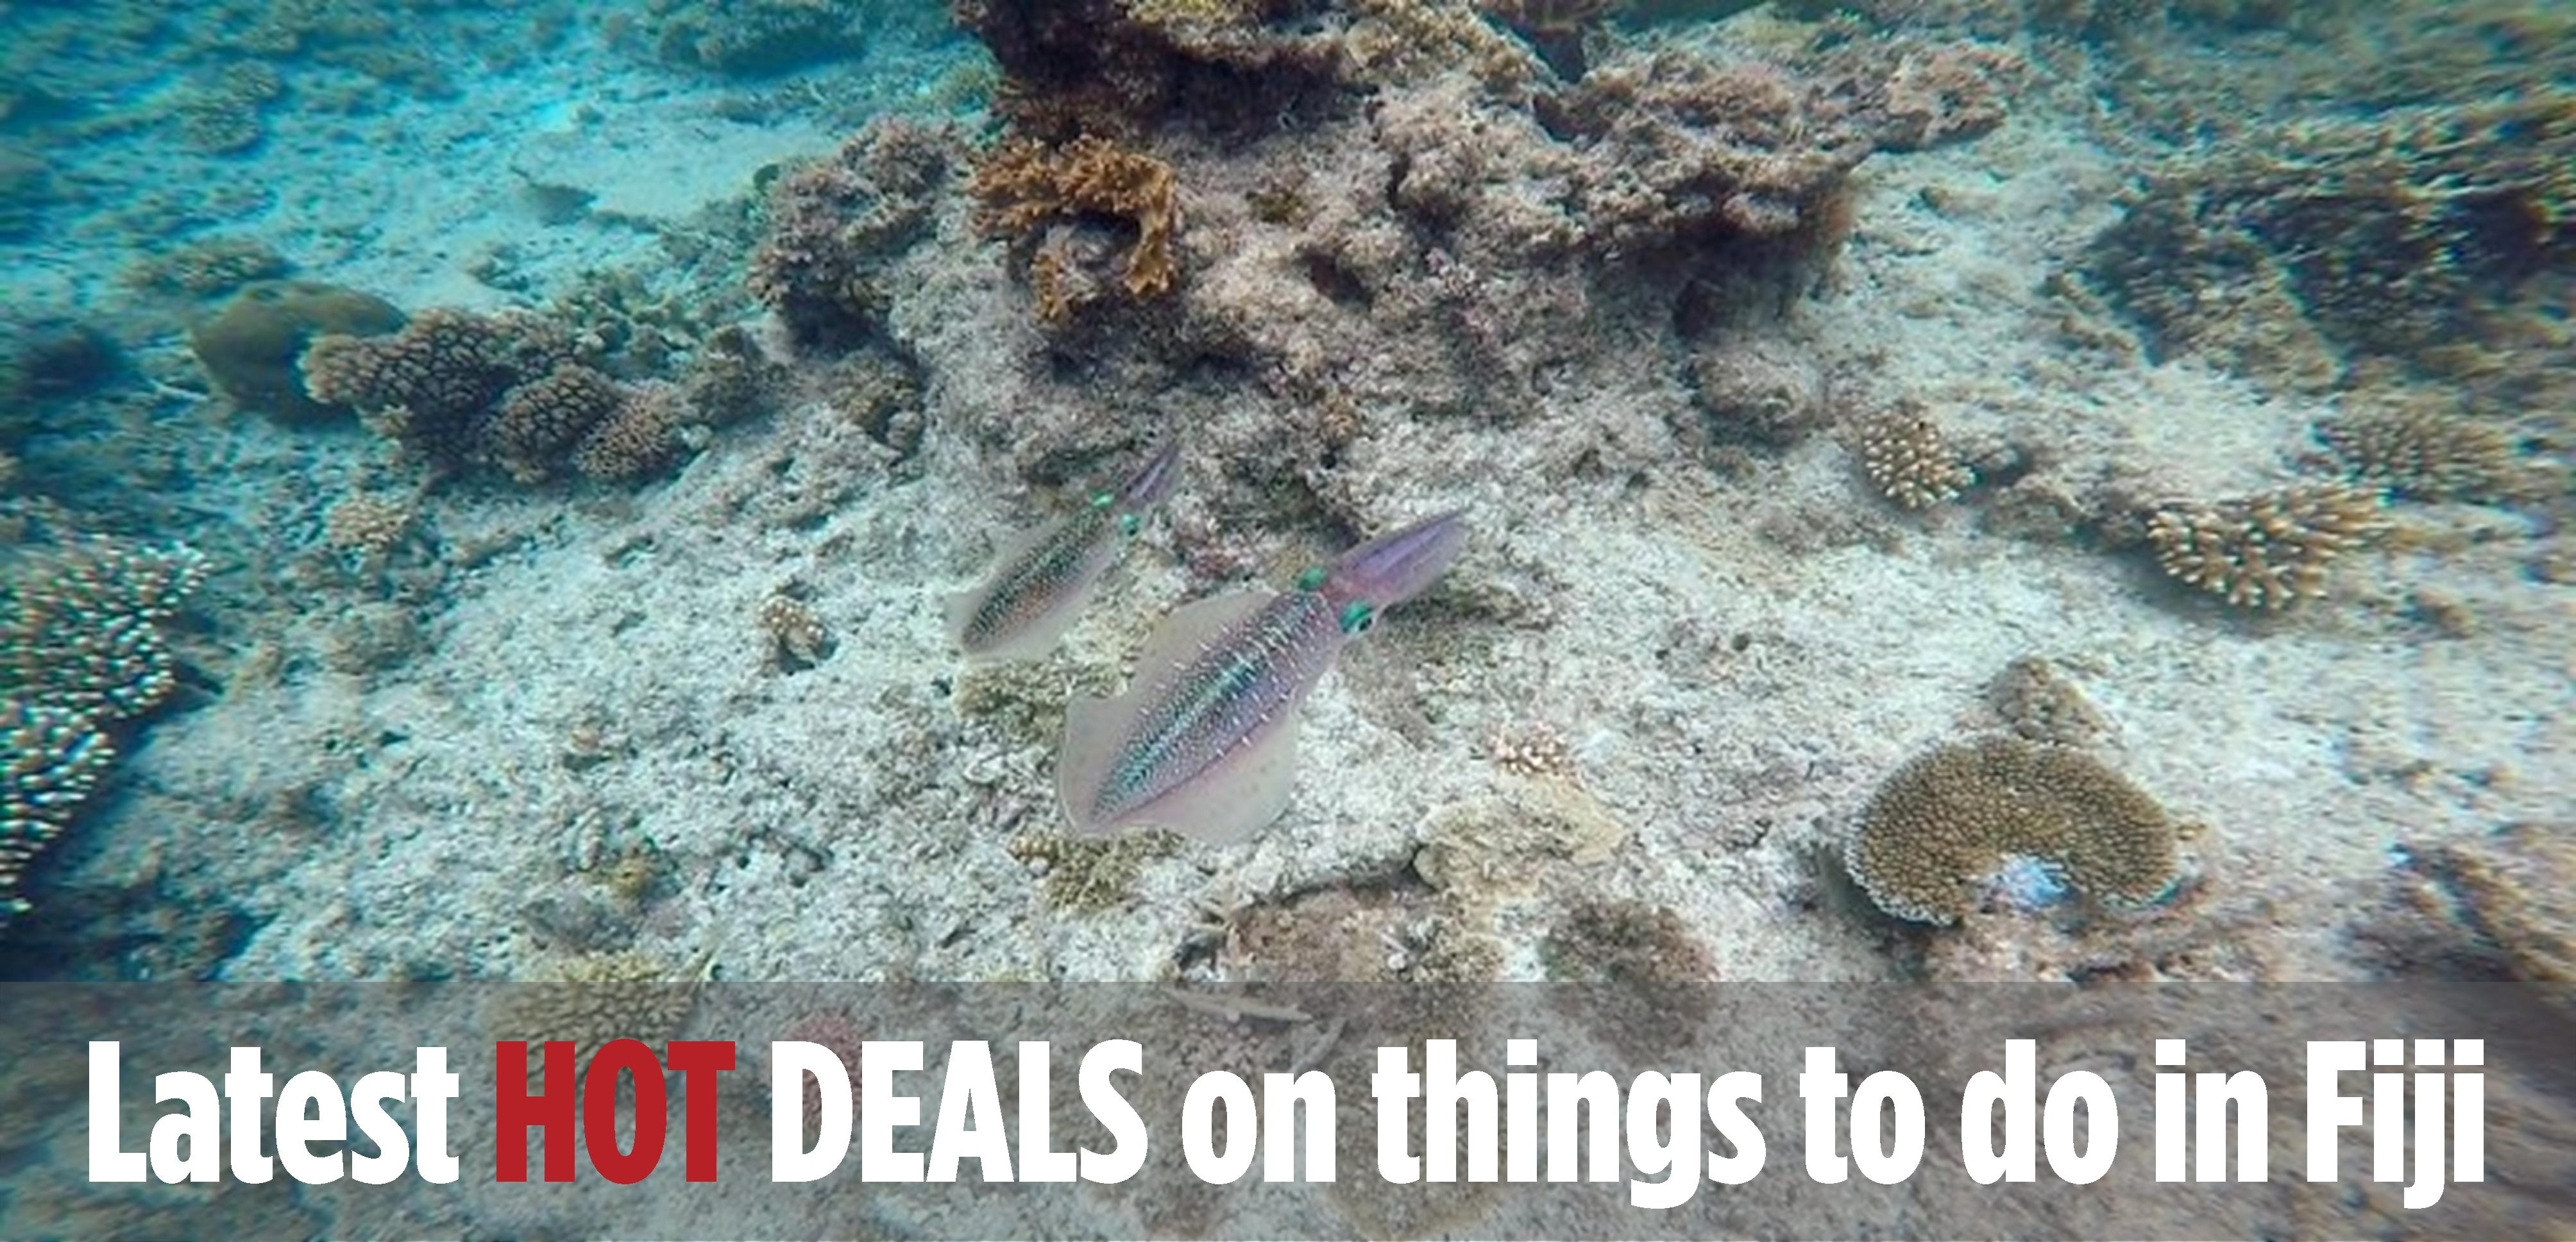 Latest HOT DEALS in Fiji